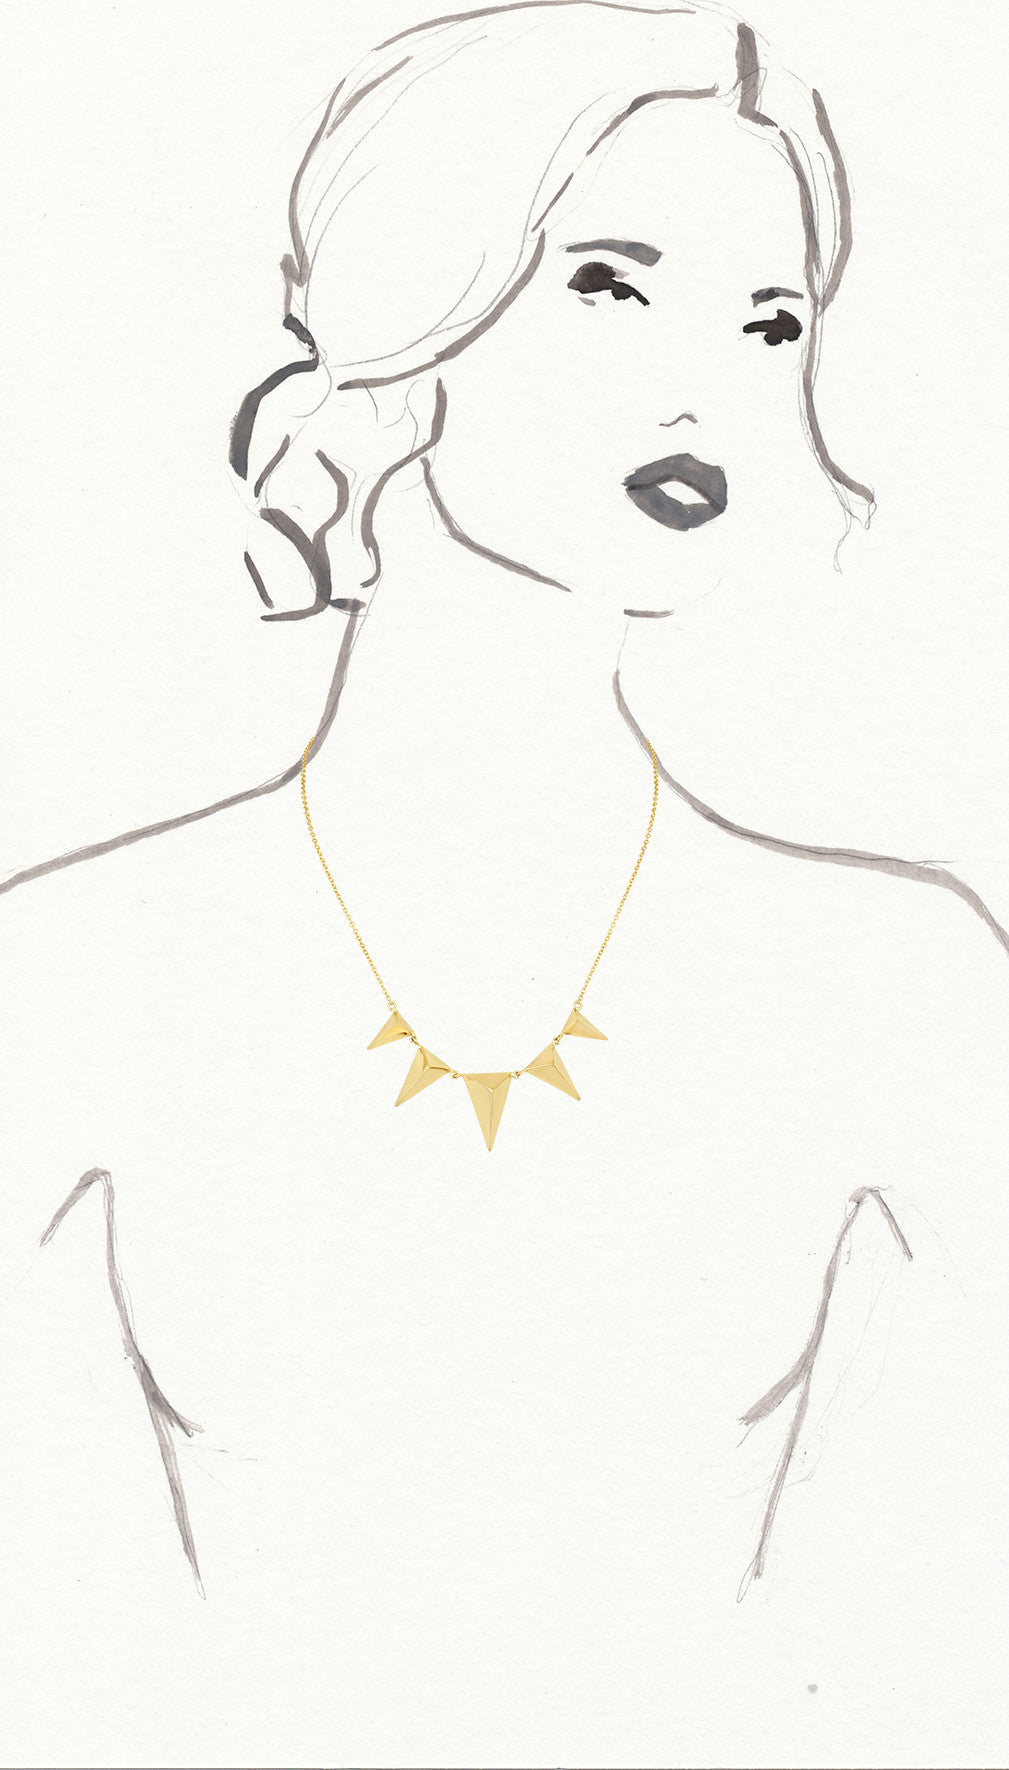 Gold Five Spike Necklace